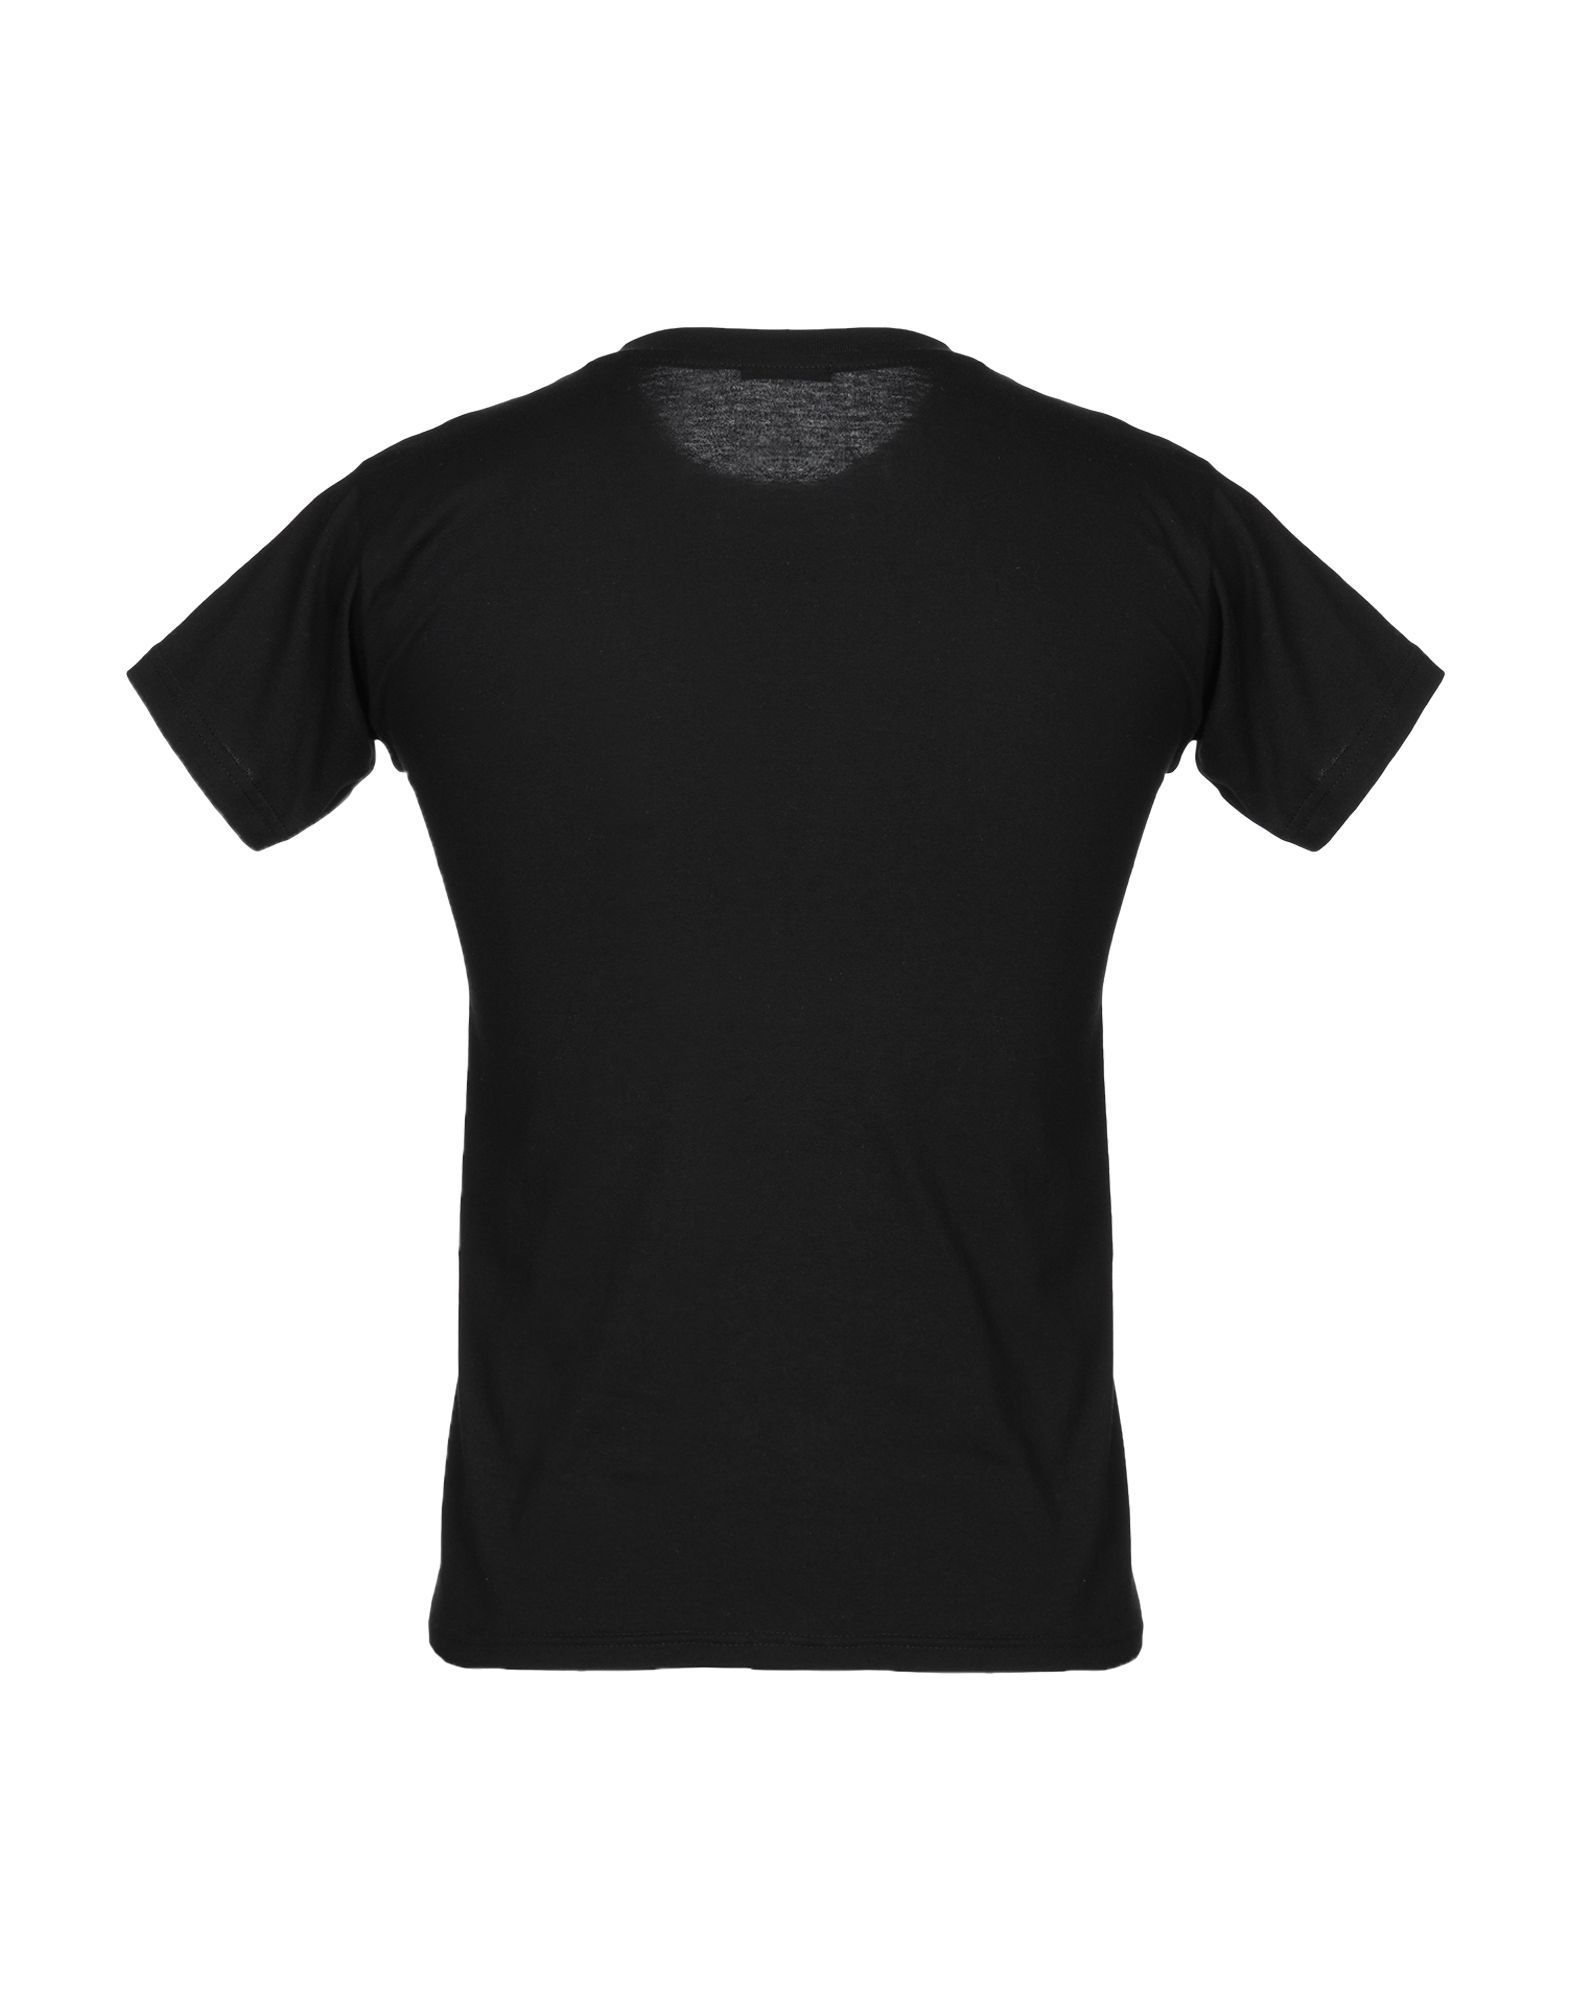 P.A.R.O.S.H. Black Print Cotton T-Shirt